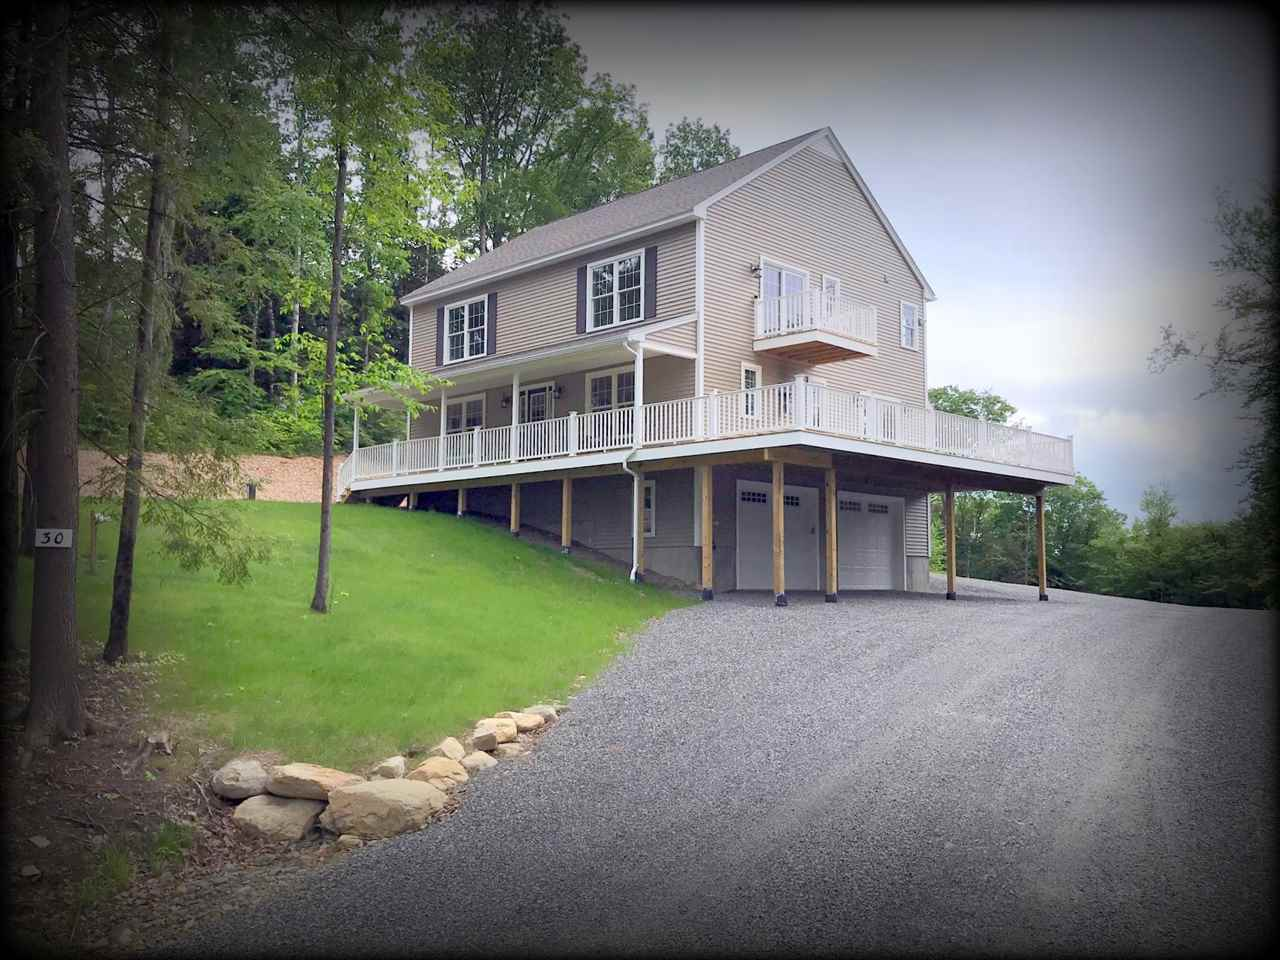 30 White Birch Drive, Chesterfield, NH 03433